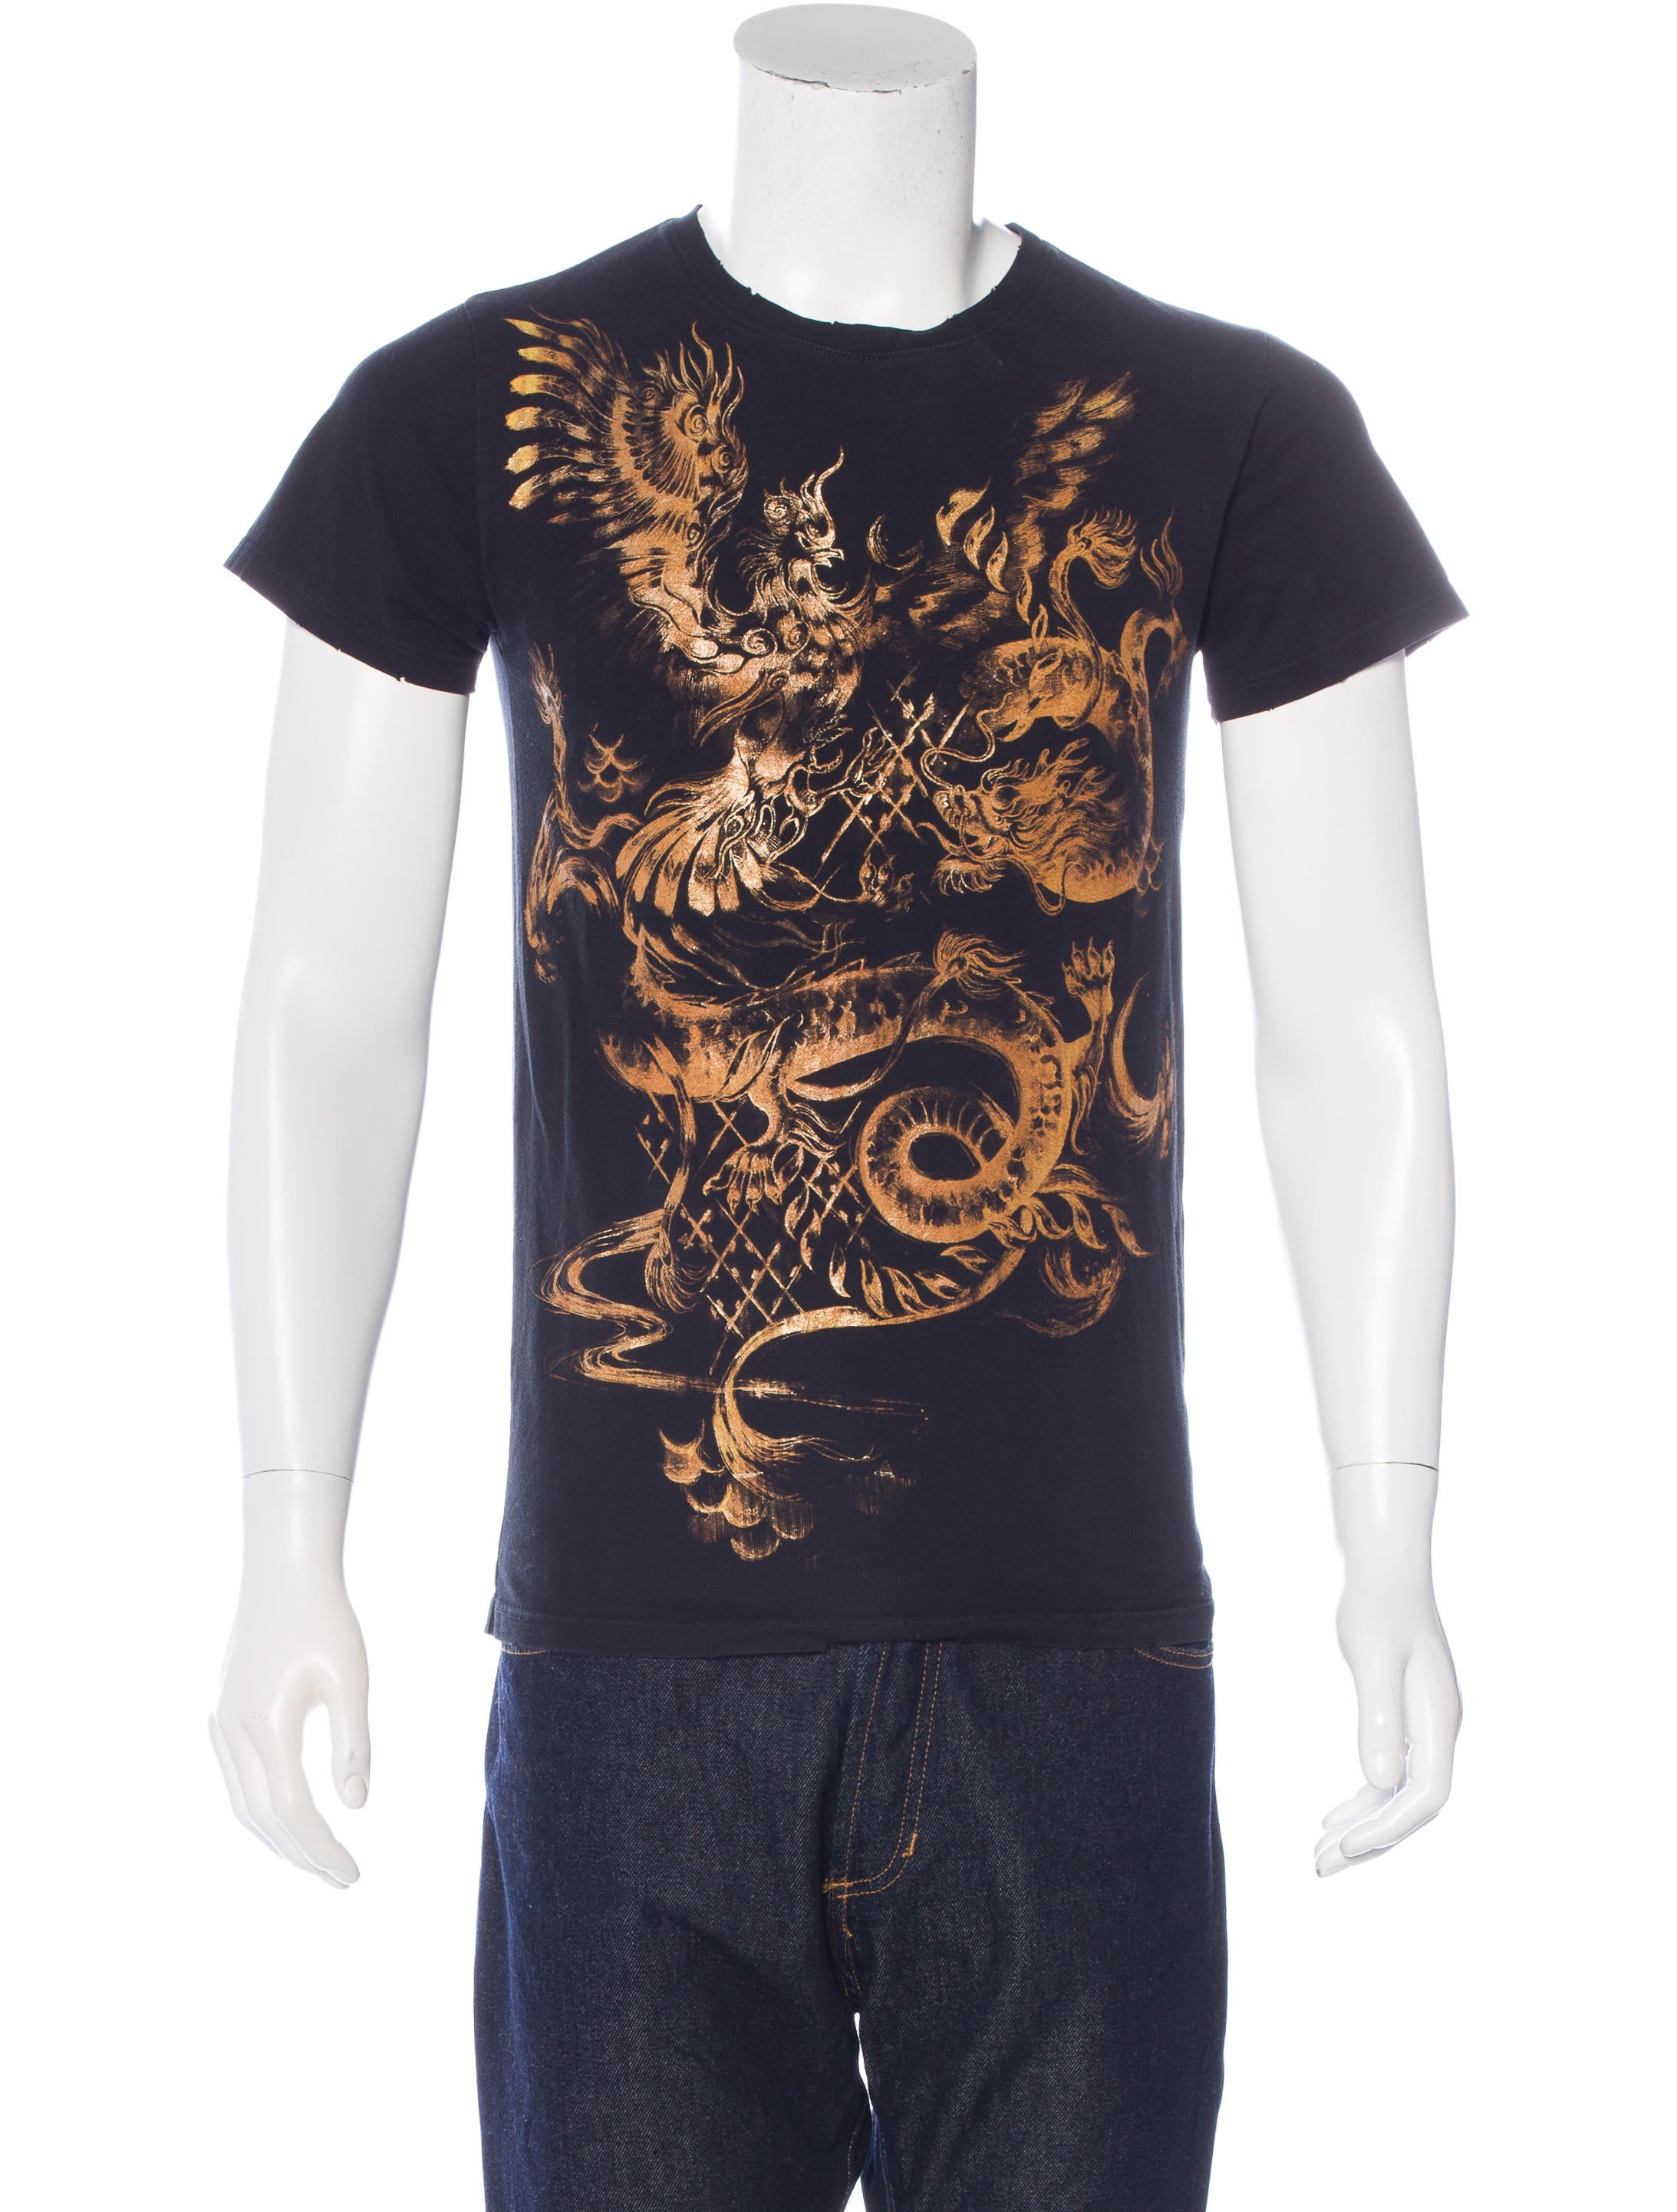 ed66137a Balmain Dragon & Phoenix T-Shirt - Clothing - BAM23524 | The RealReal